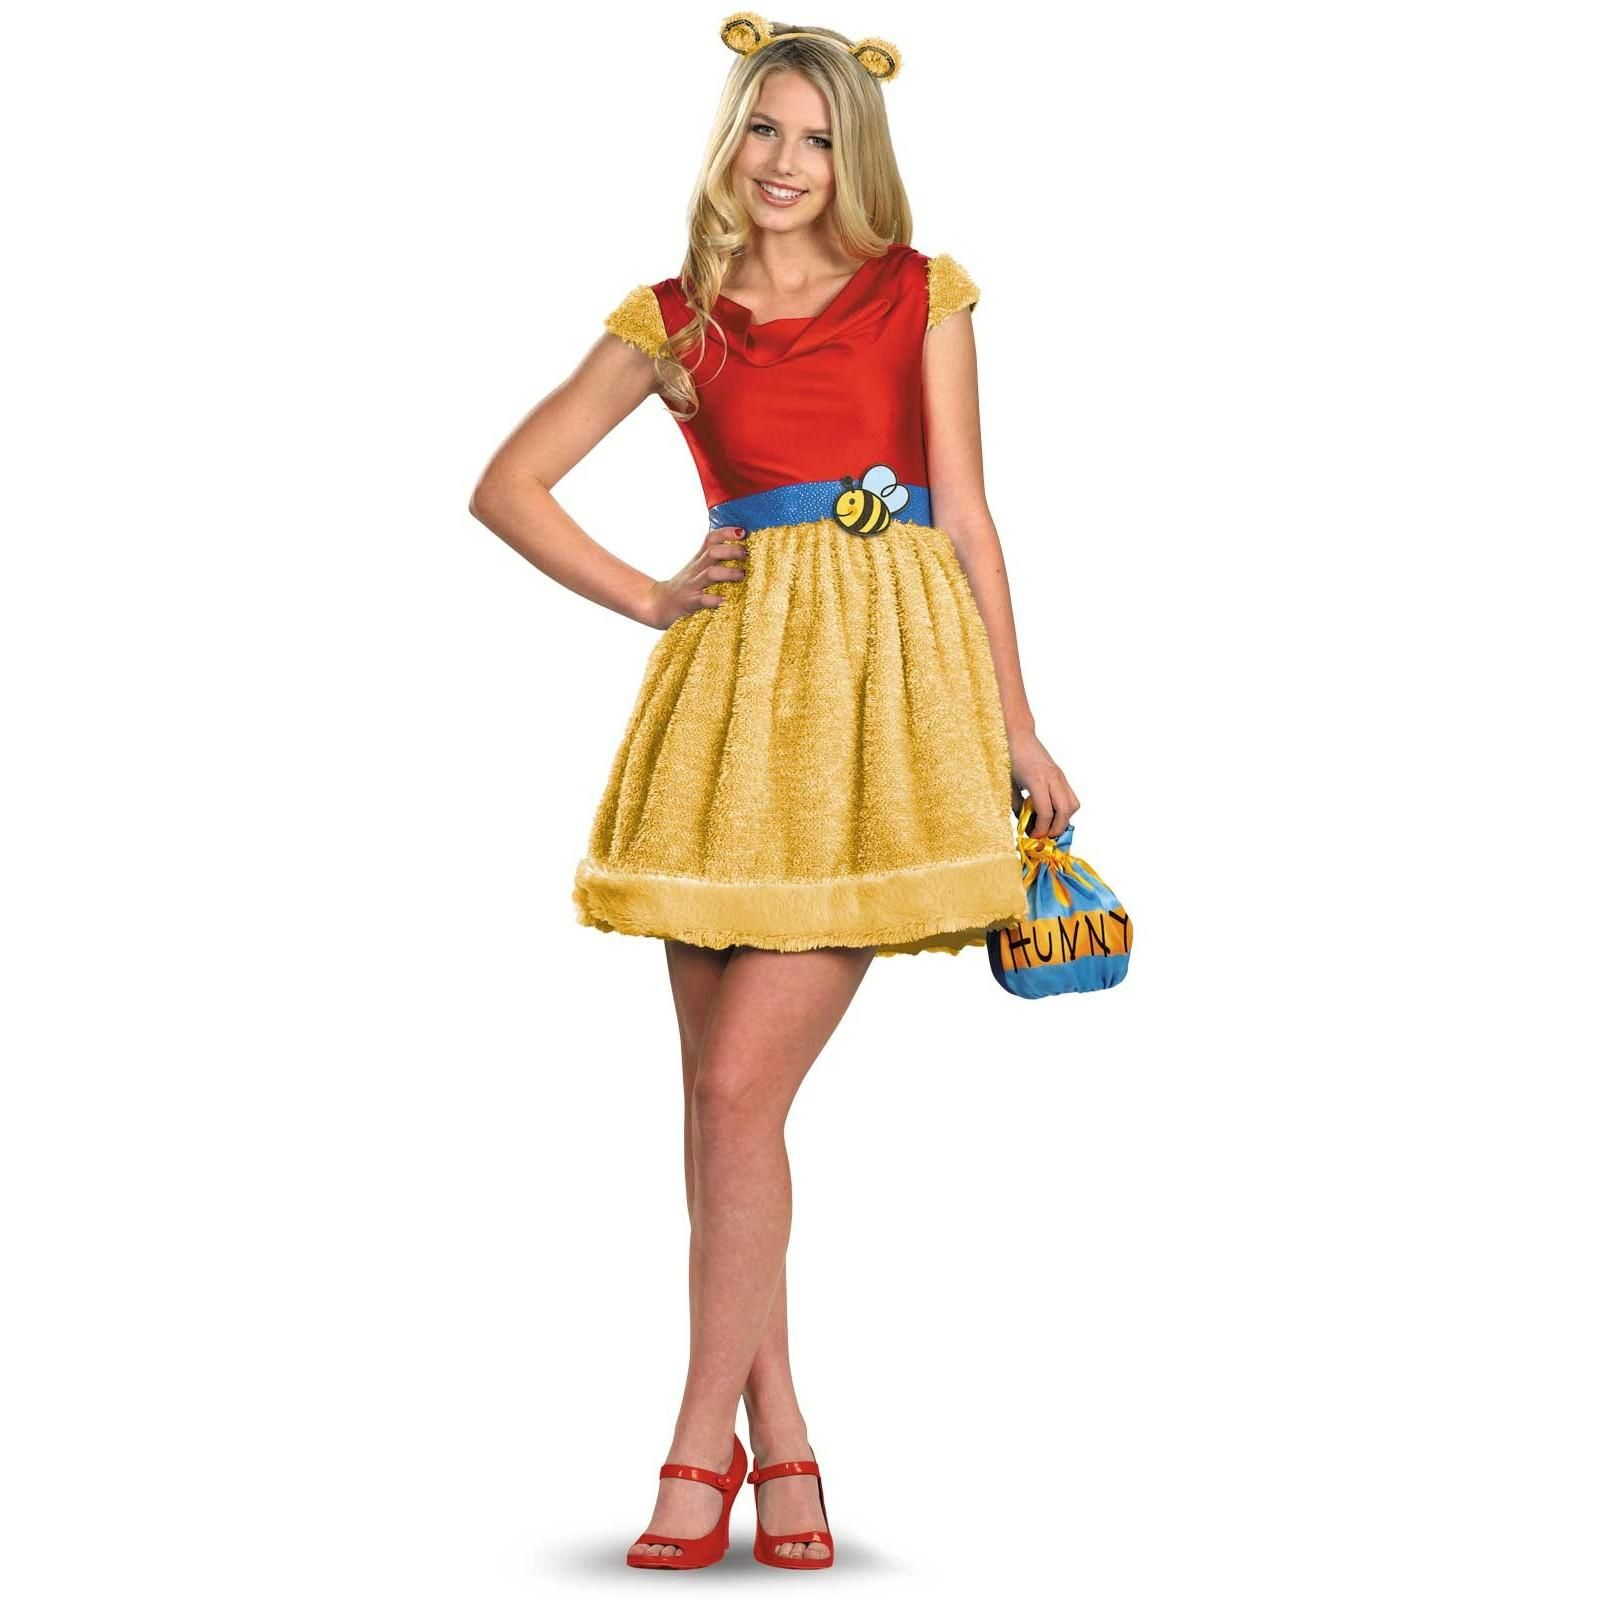 7e09cd6487d4 winnie the pooh diy costumes for teen girls - Google Search ...